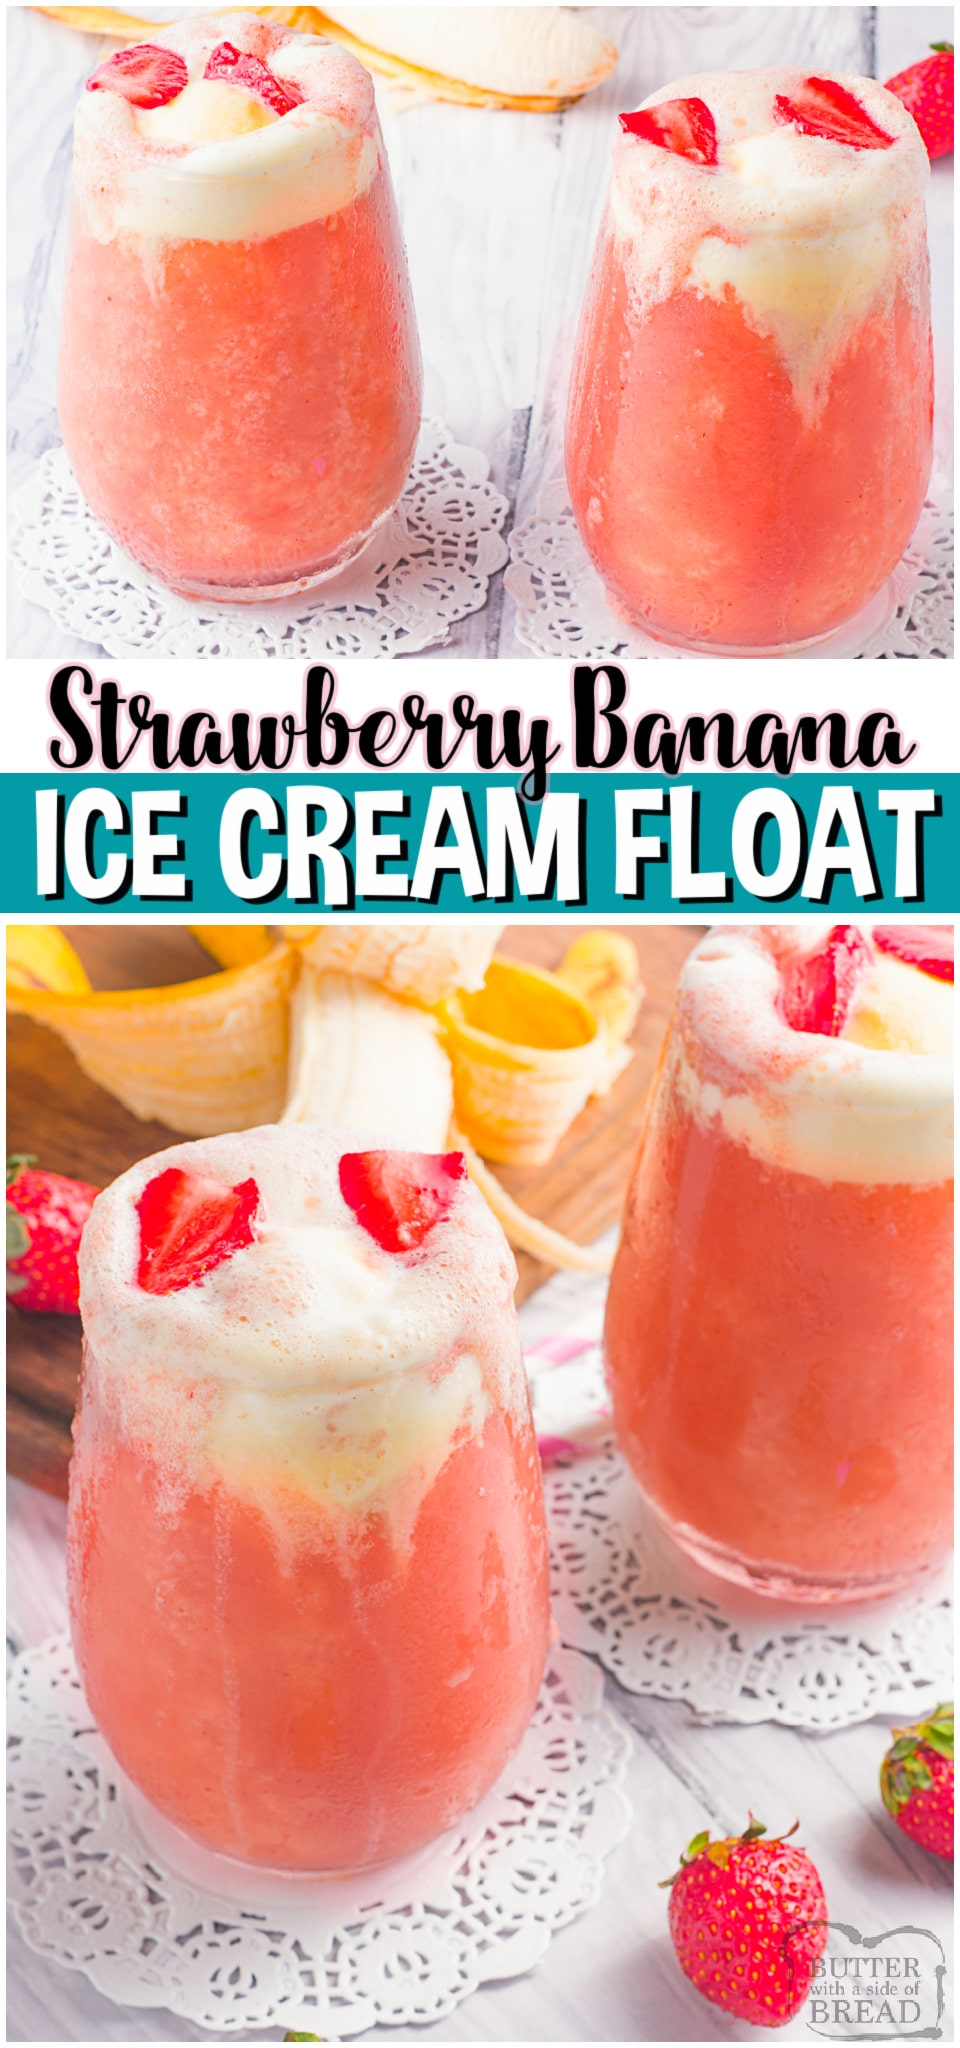 Simple & delicious strawberry banana ice cream float that's part smoothie, part slurpee and ALL amazing! Fresh strawberries and bananas blended, then topped with soda & ice cream. This Strawberry Banana Ice Cream Float is a fun treat everyone enjoys! #slurpee #icecream #strawberries #banana #dessert #icecreamfloat #easyrecipe from BUTTER WITH A SIDE OF BREAD